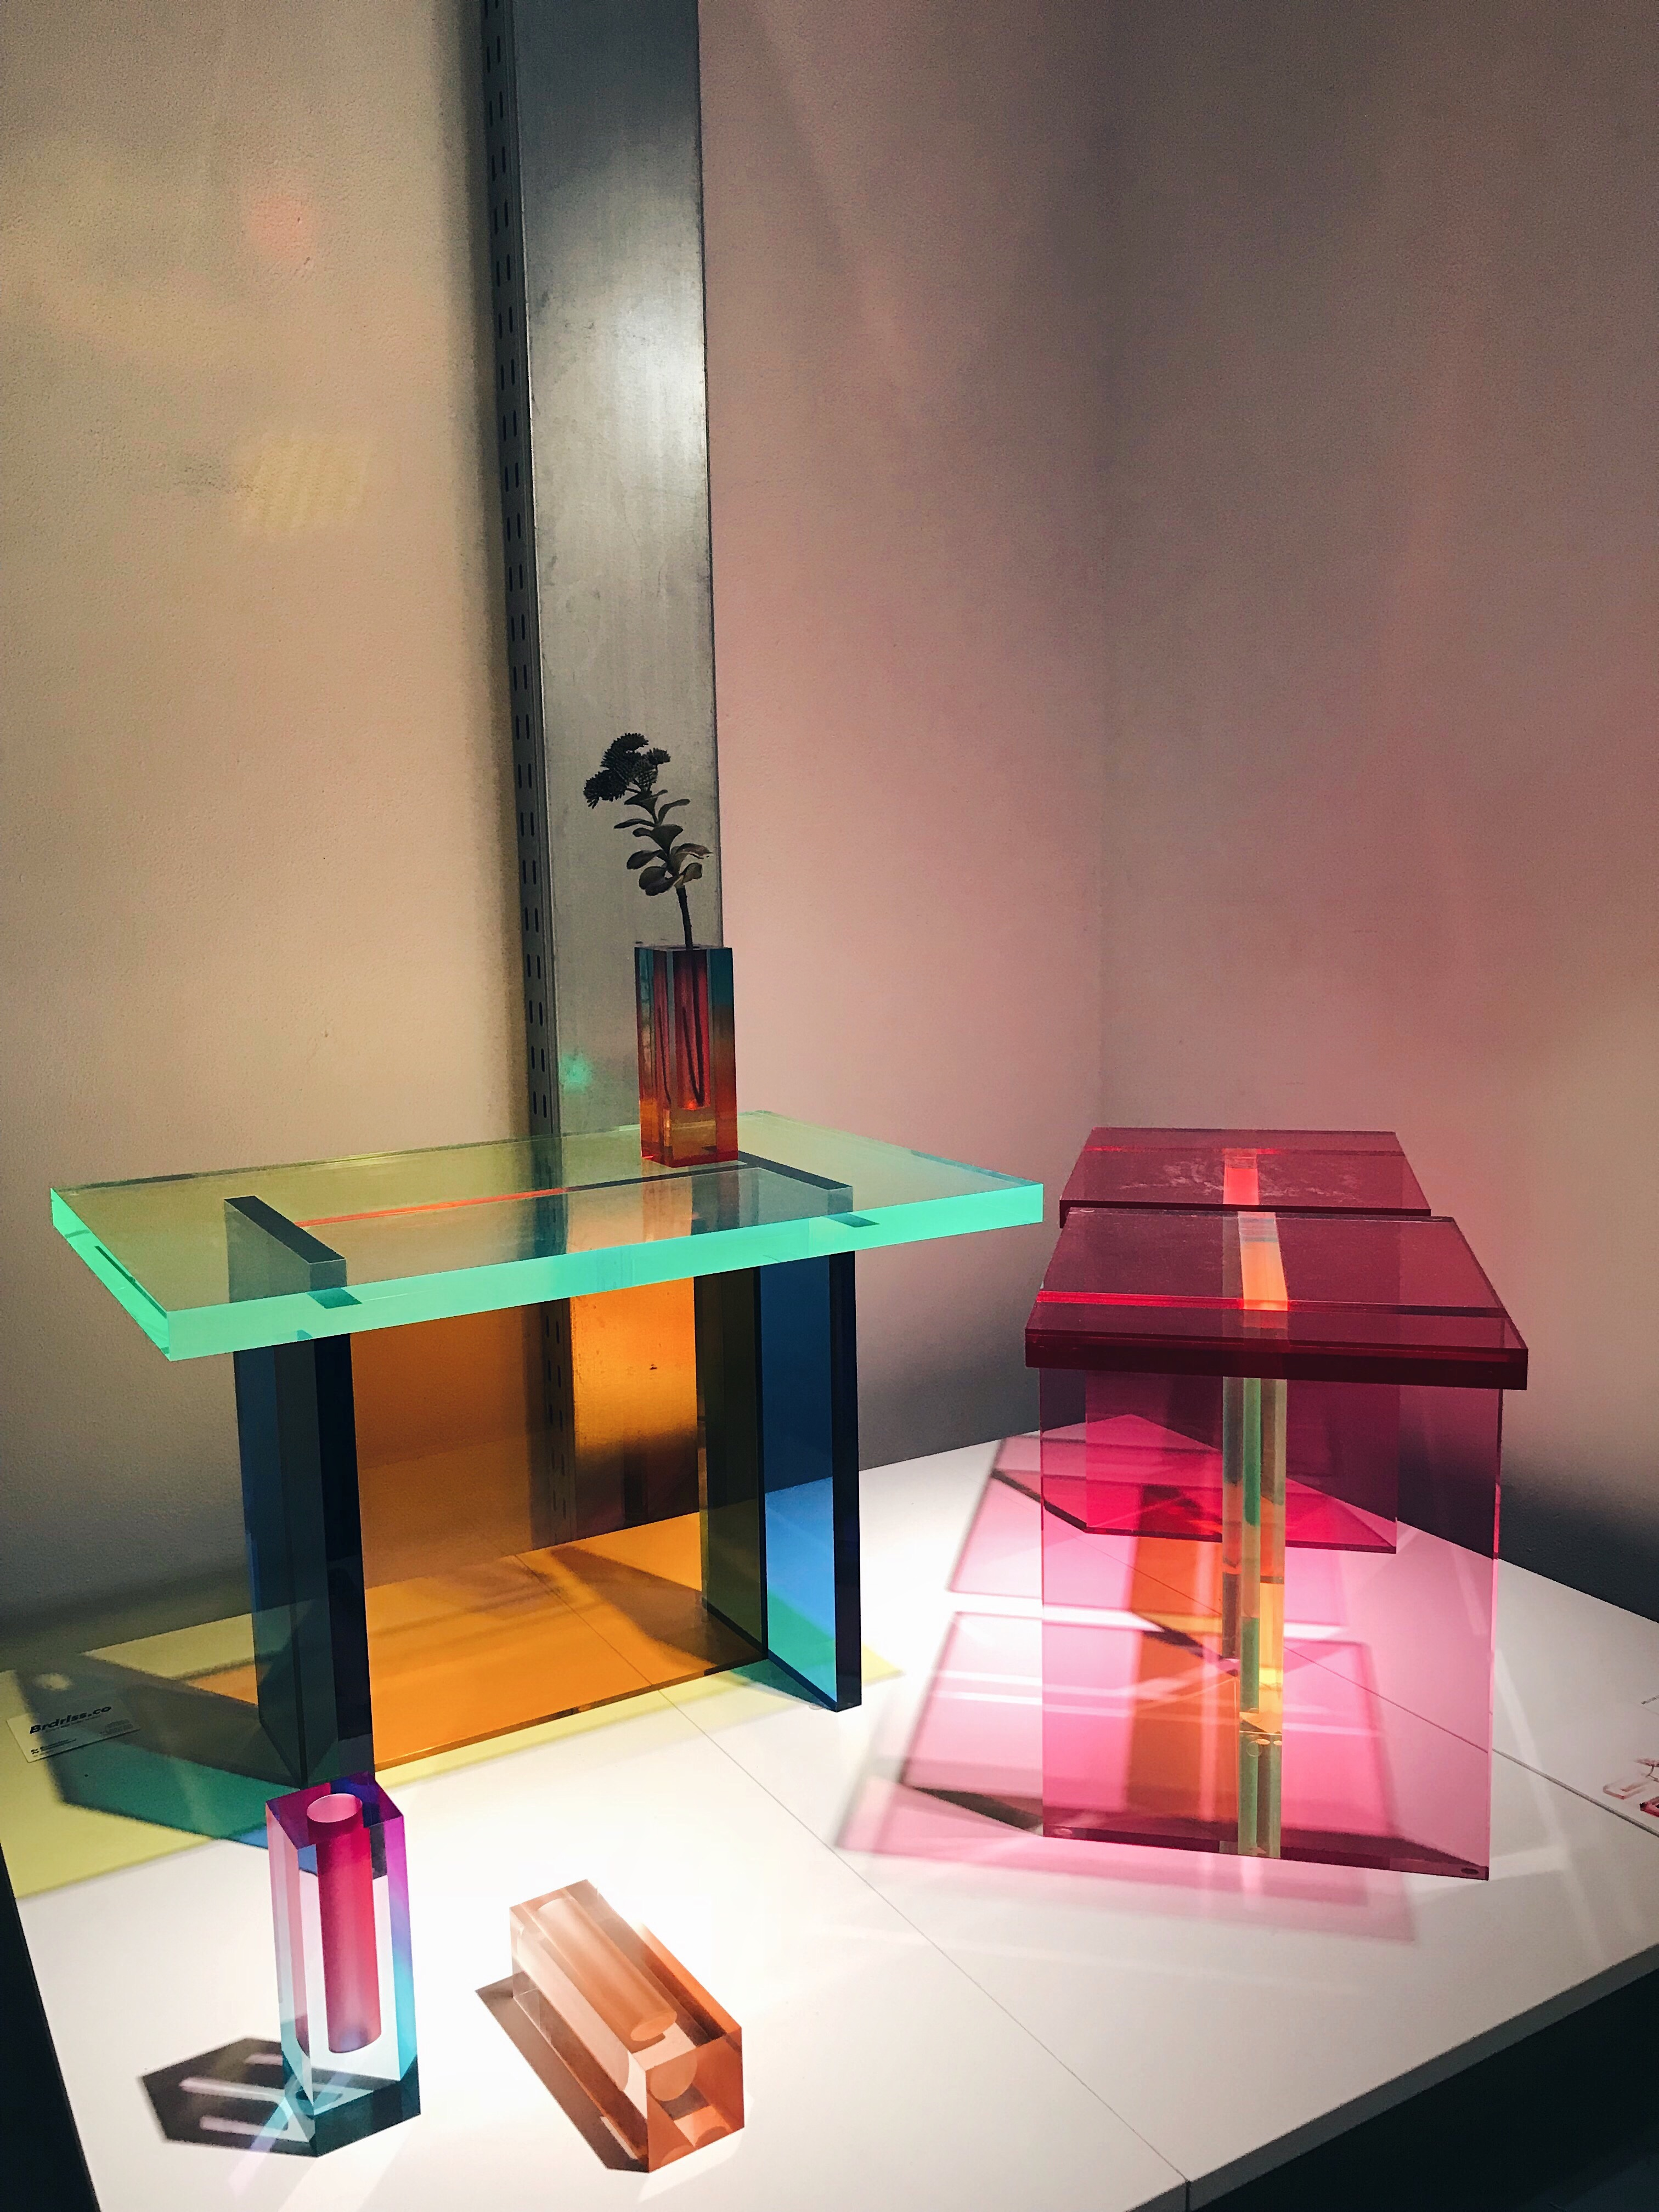 The Neon and Mellow collection by Umzikim